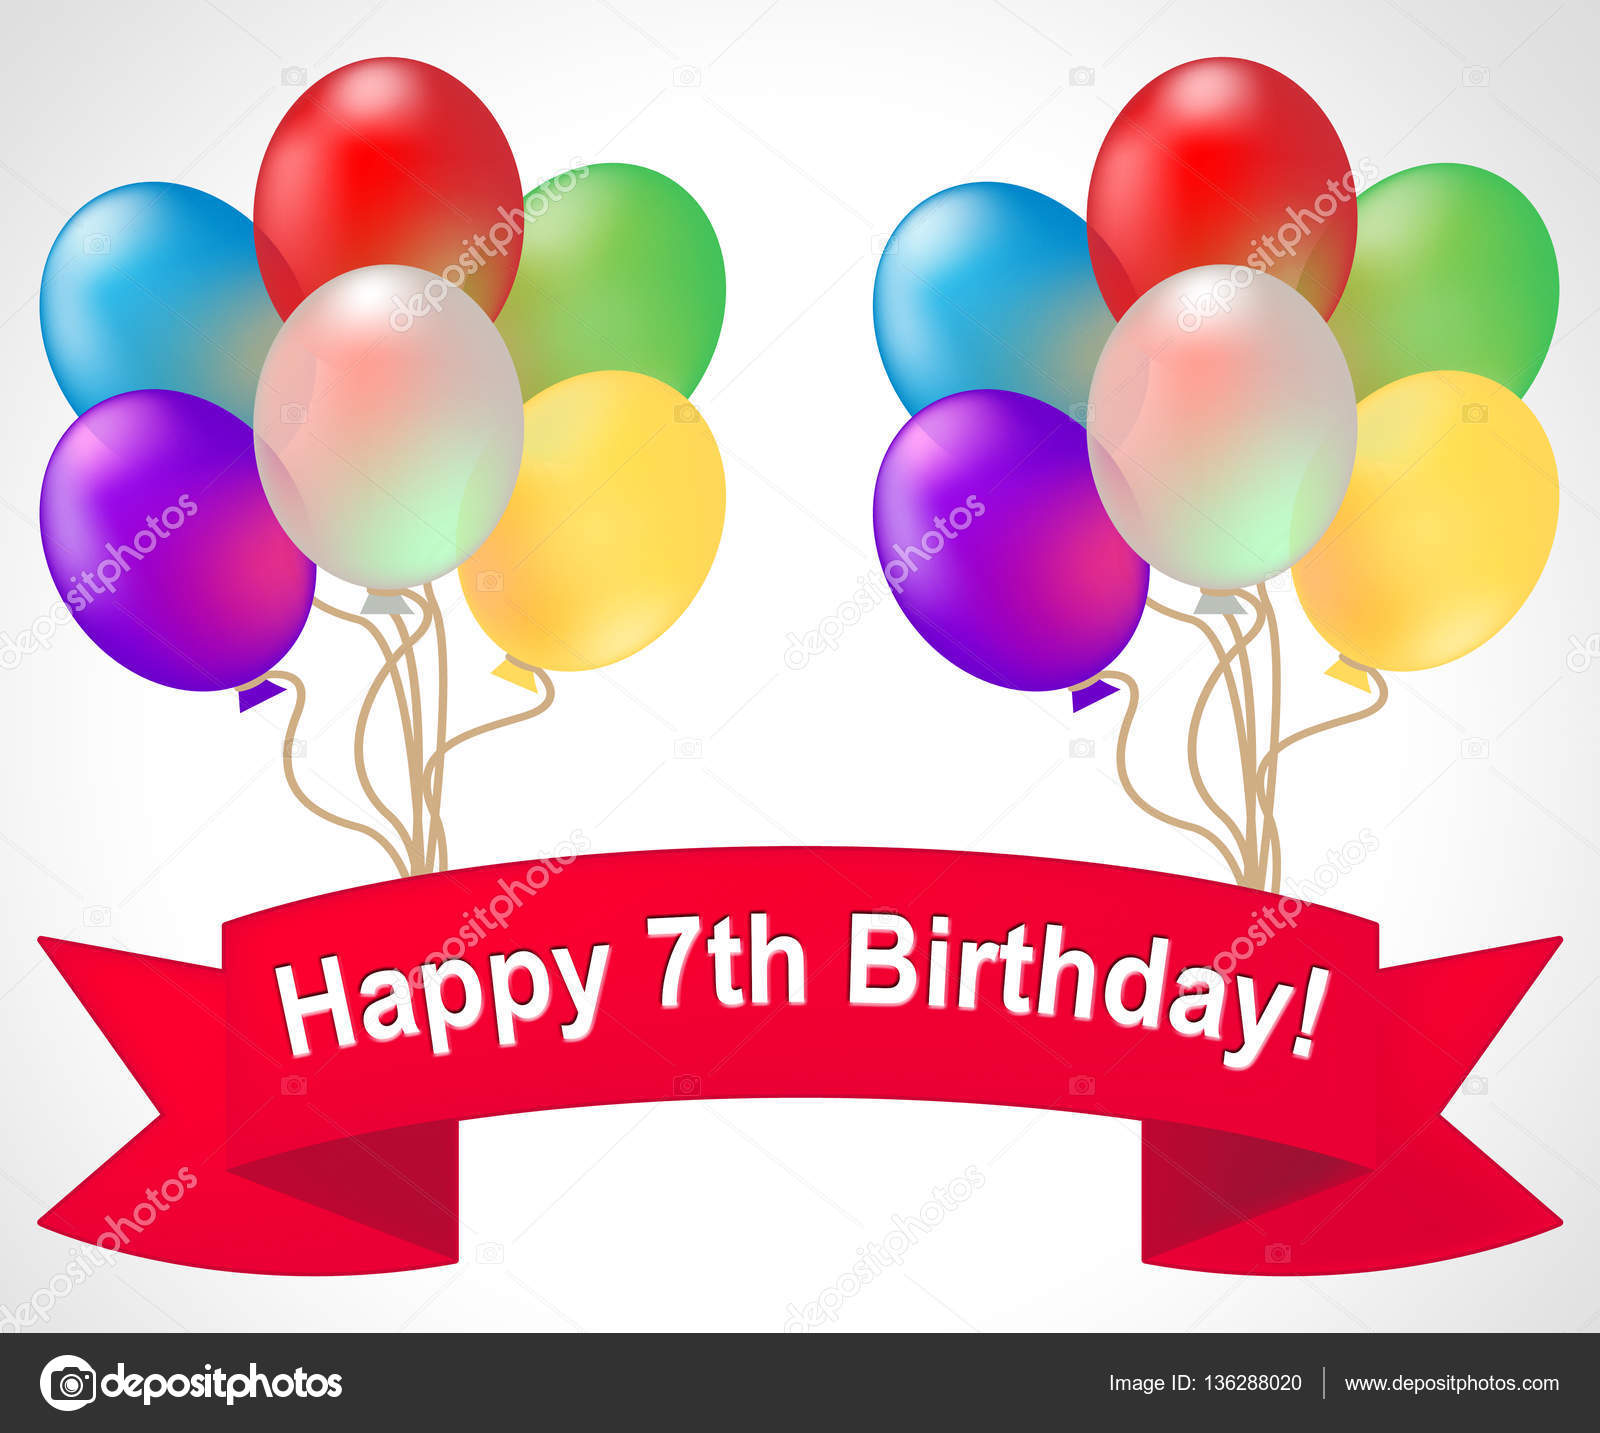 Happy Seventh Birthday Meaning 7th Party Celebration 3d Illustra Stock Photo C Stuartmiles 136288020